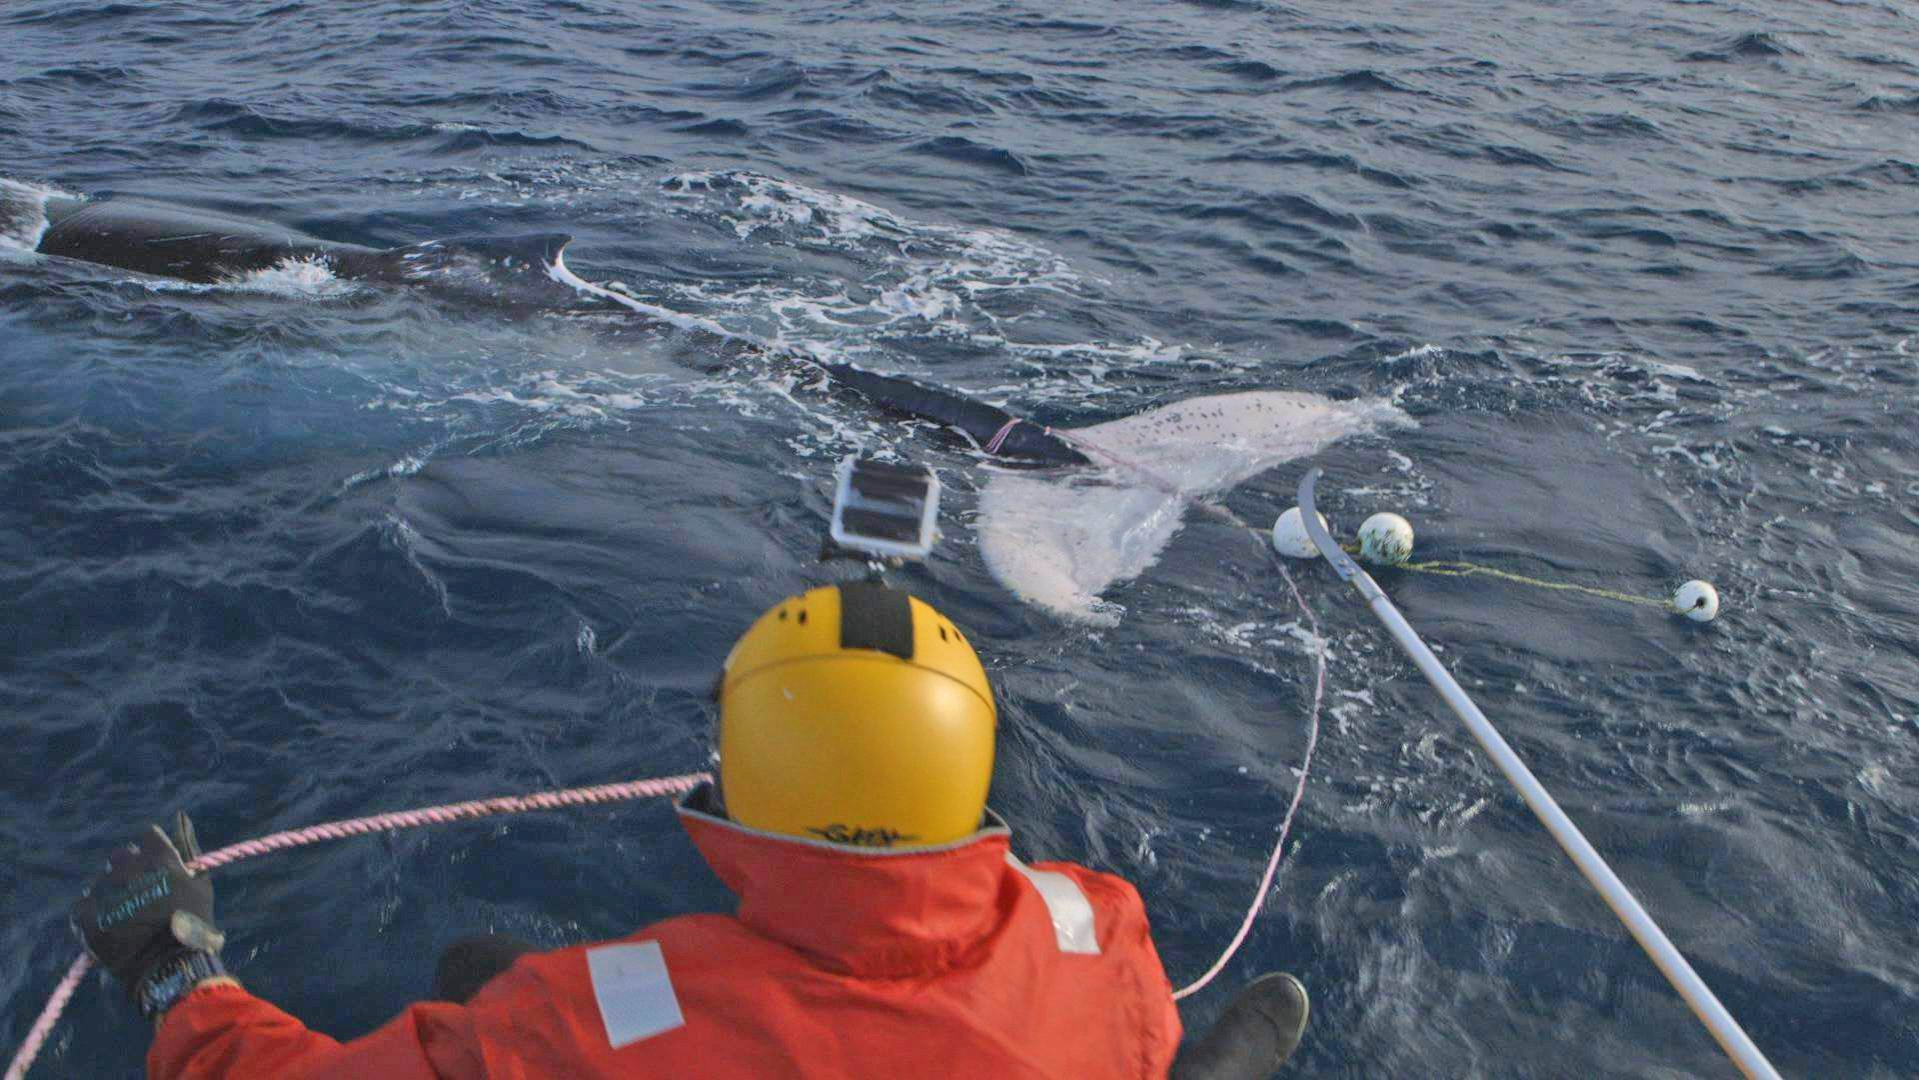 Rescue: entangled in ropes and floats, this humpback whale was freed from its fetters thanks to the efforts of the public and the Department of Environment and Conservation. Pictures: Leighton De Barros